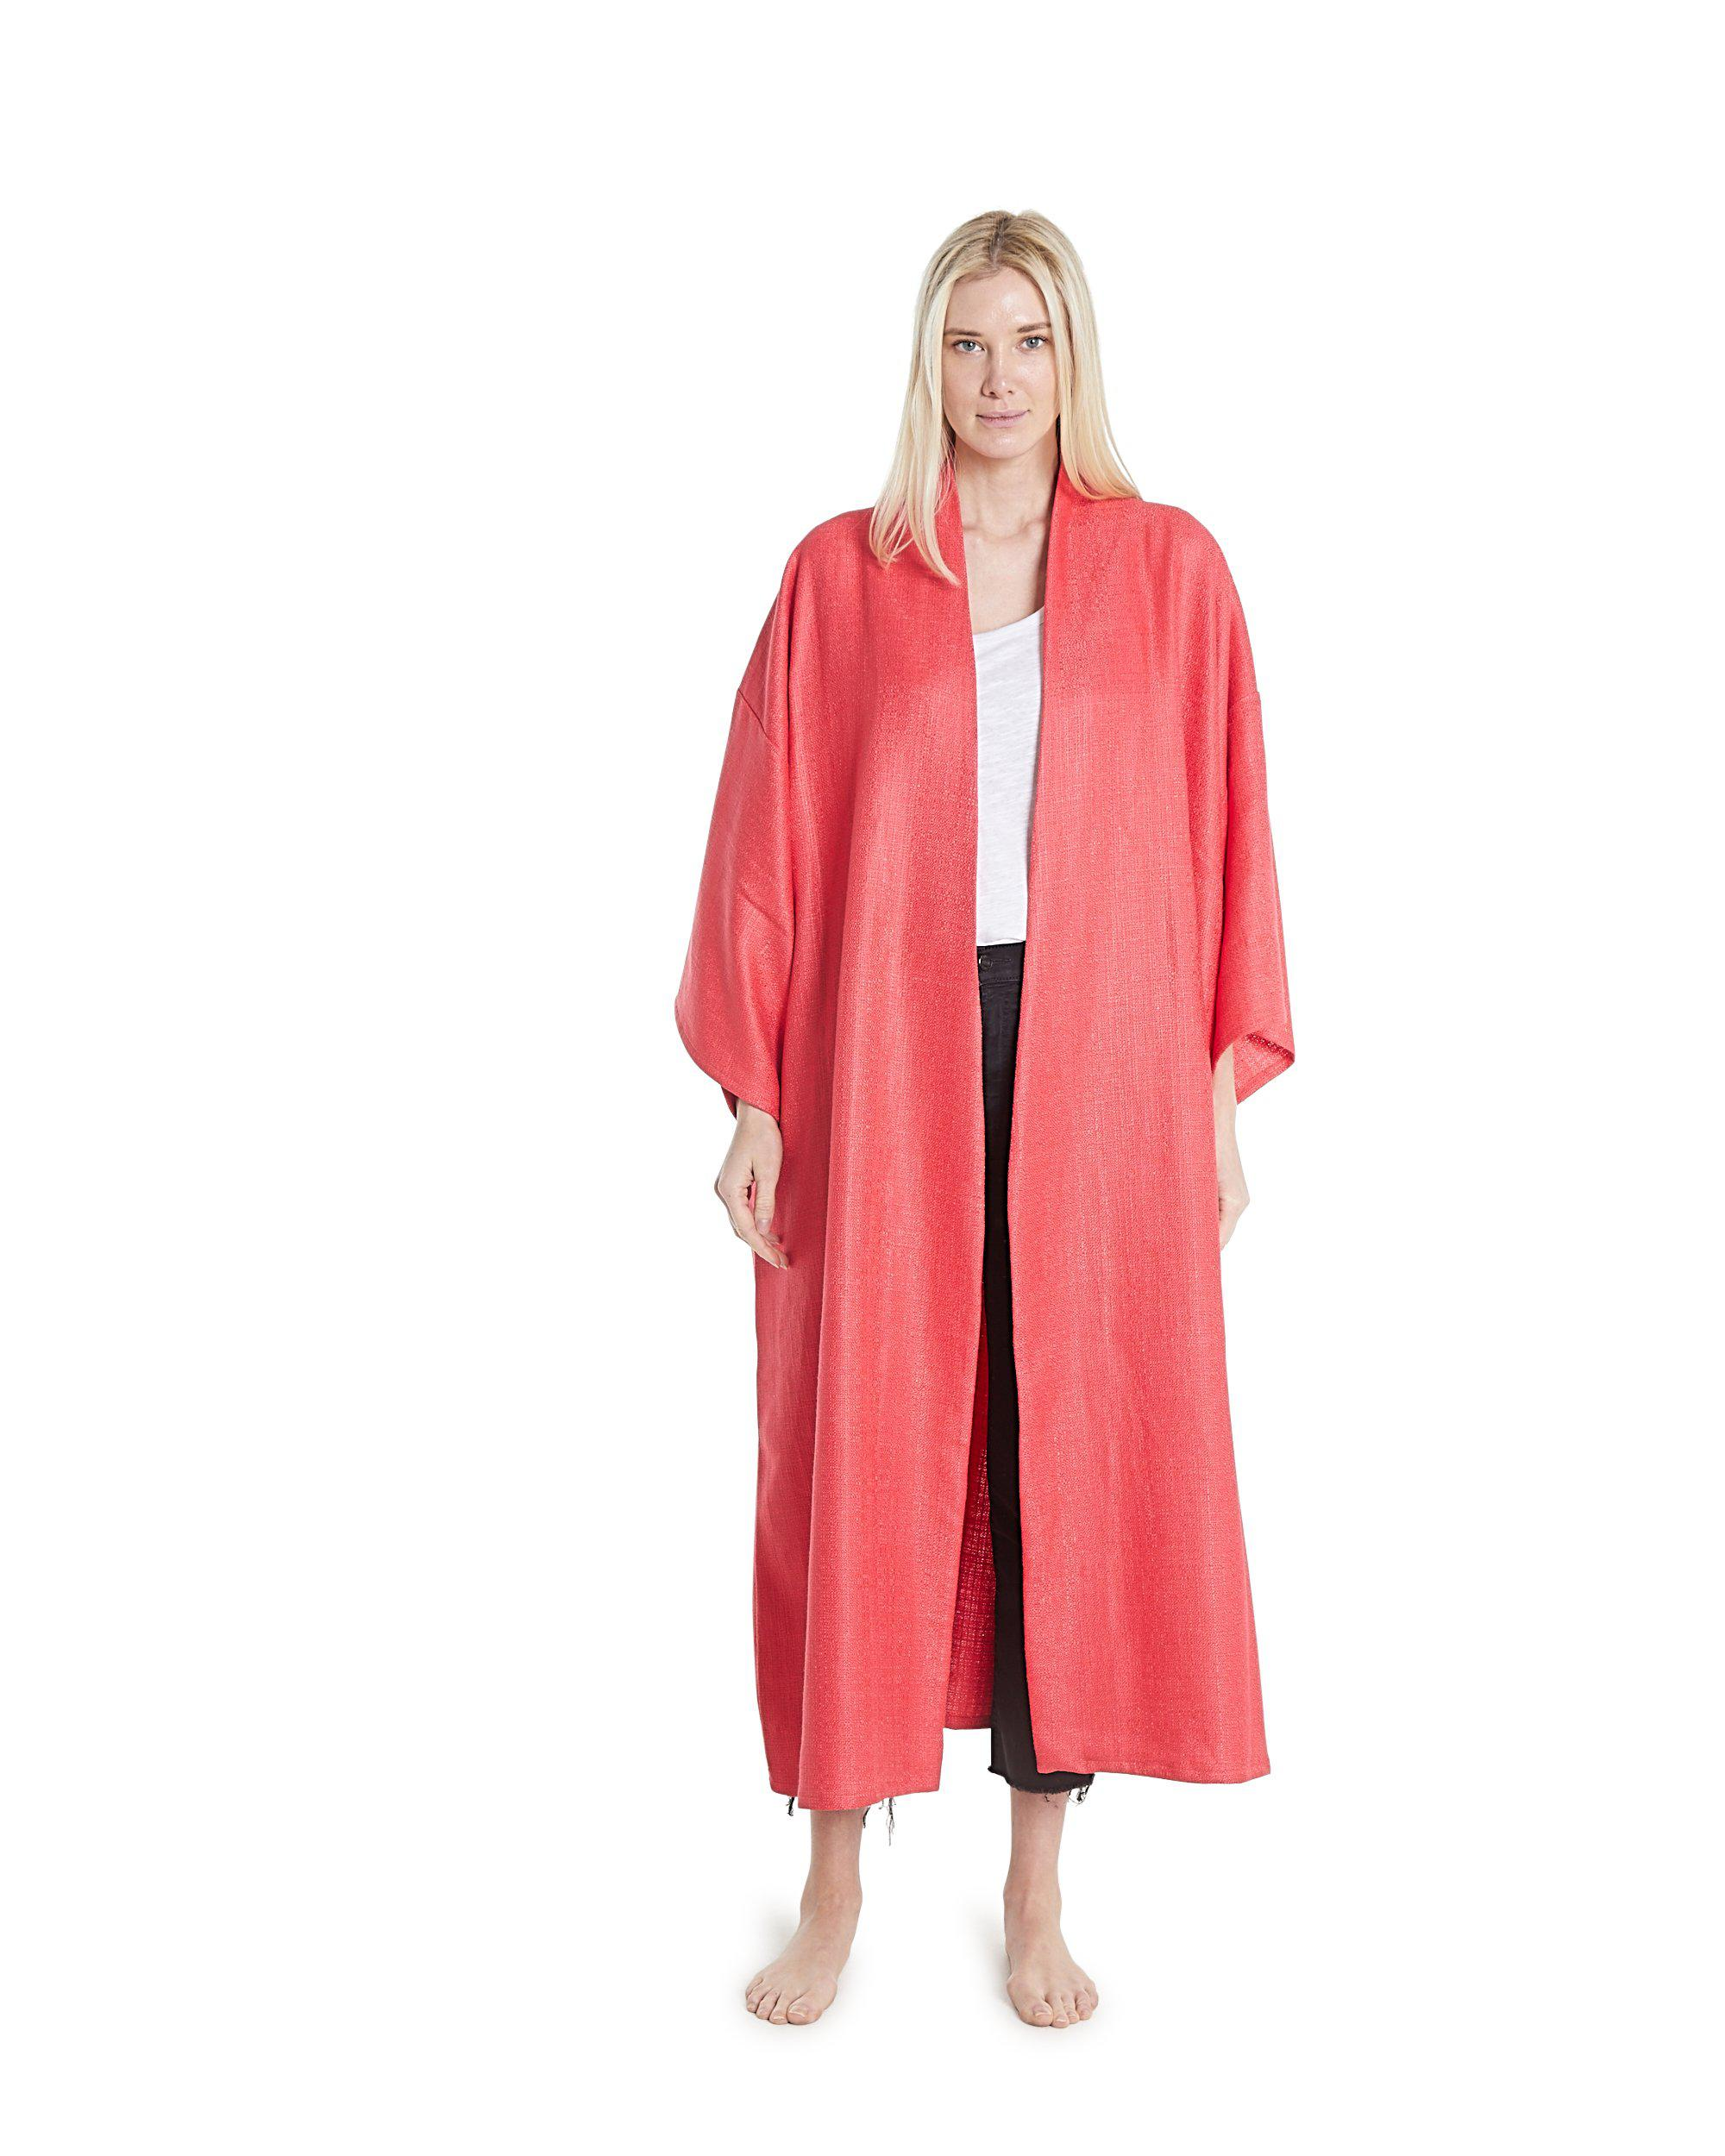 no. 4036 coral linen duster